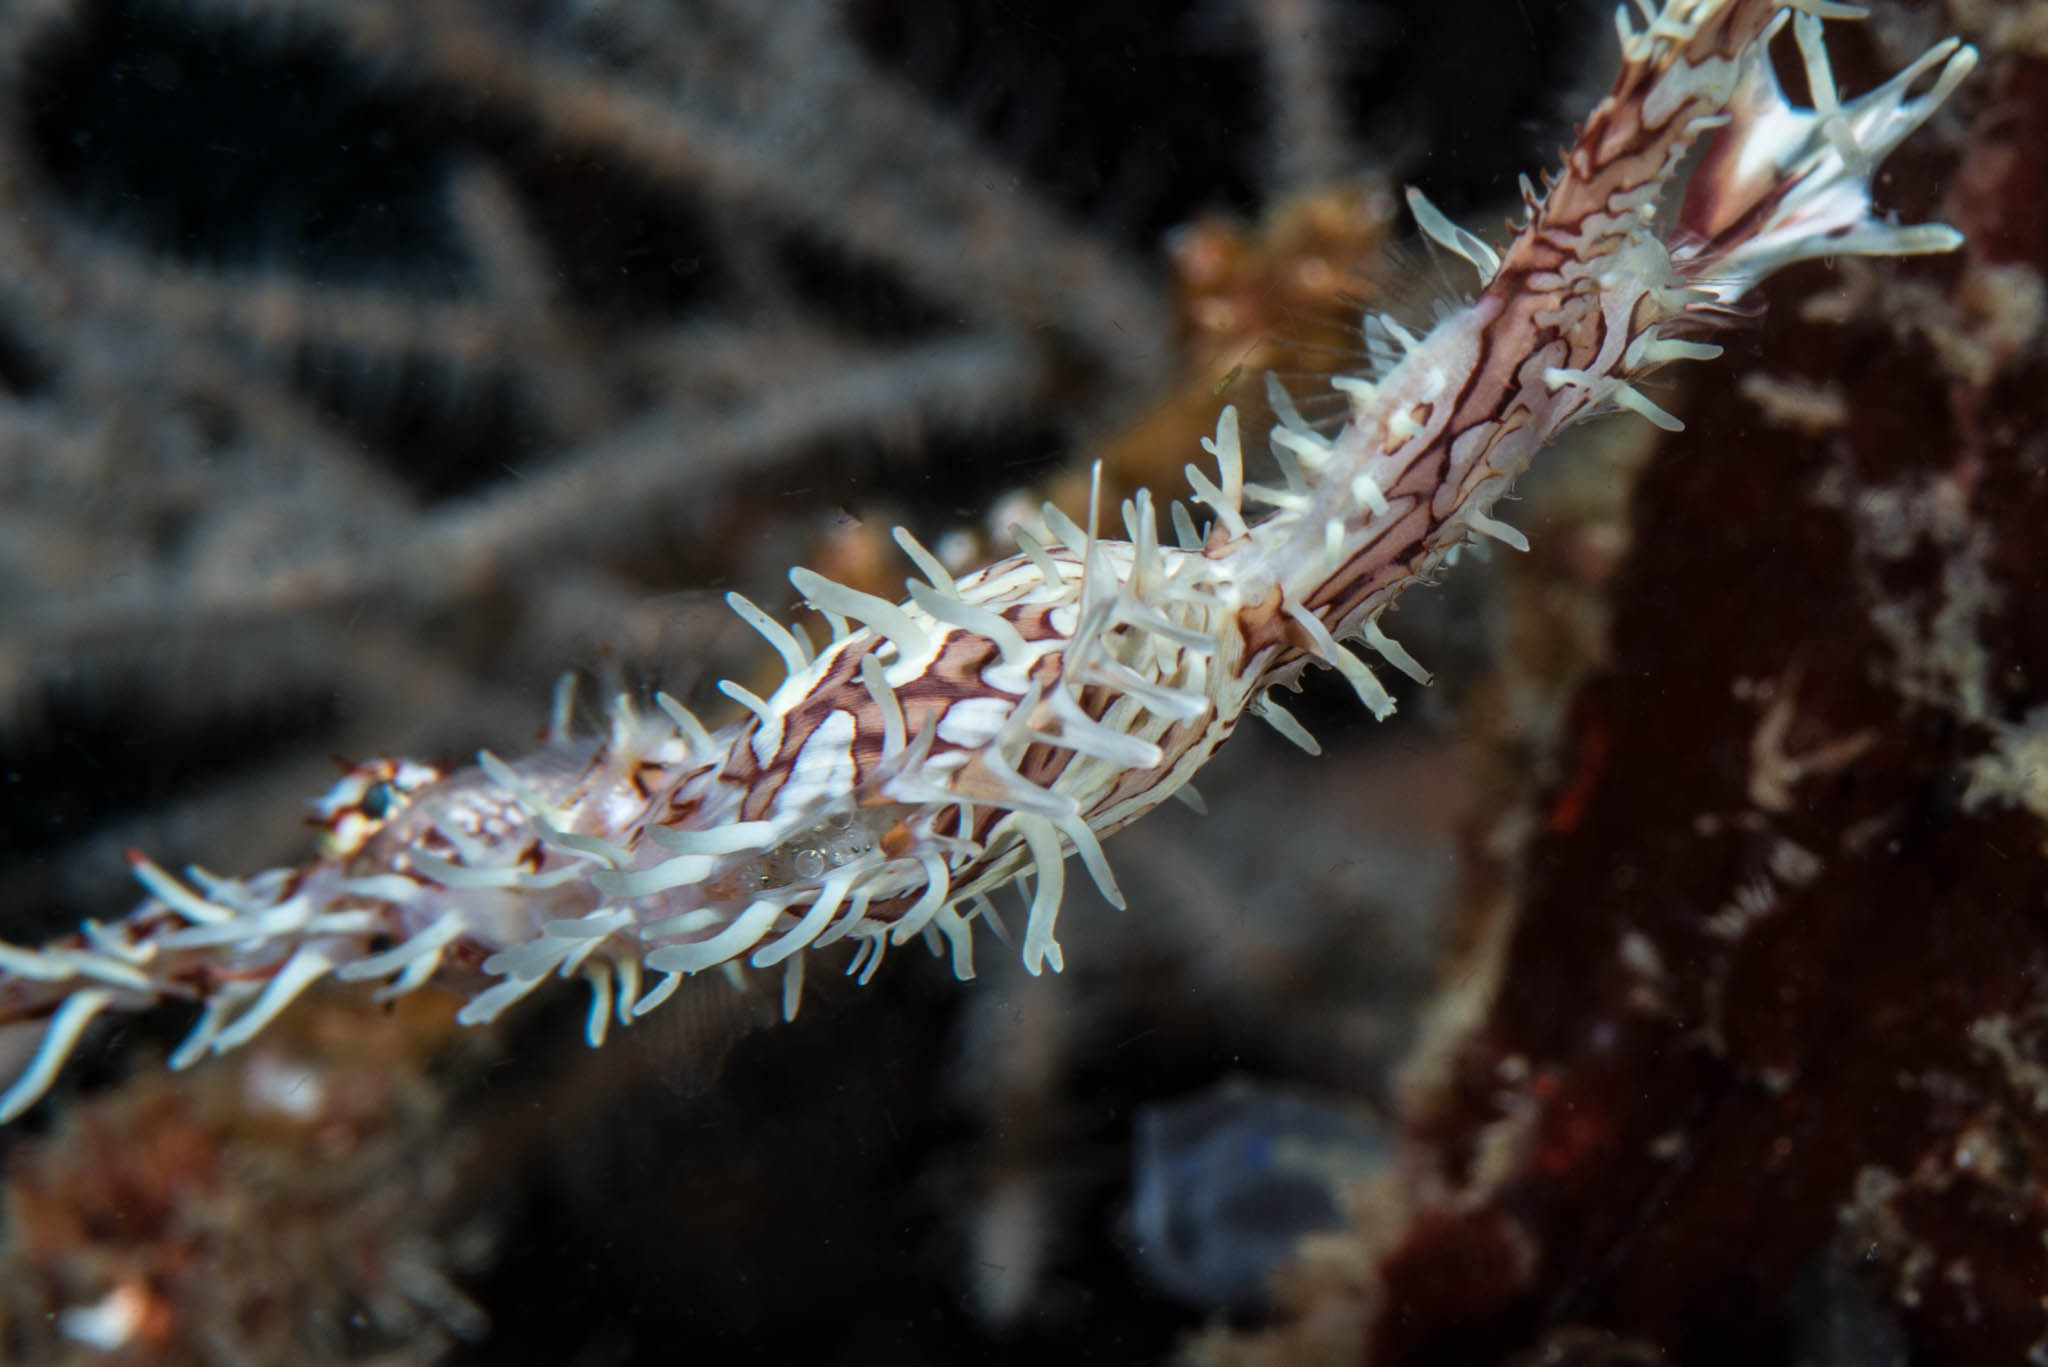 Pregnant Ornate Ghost Pipefish